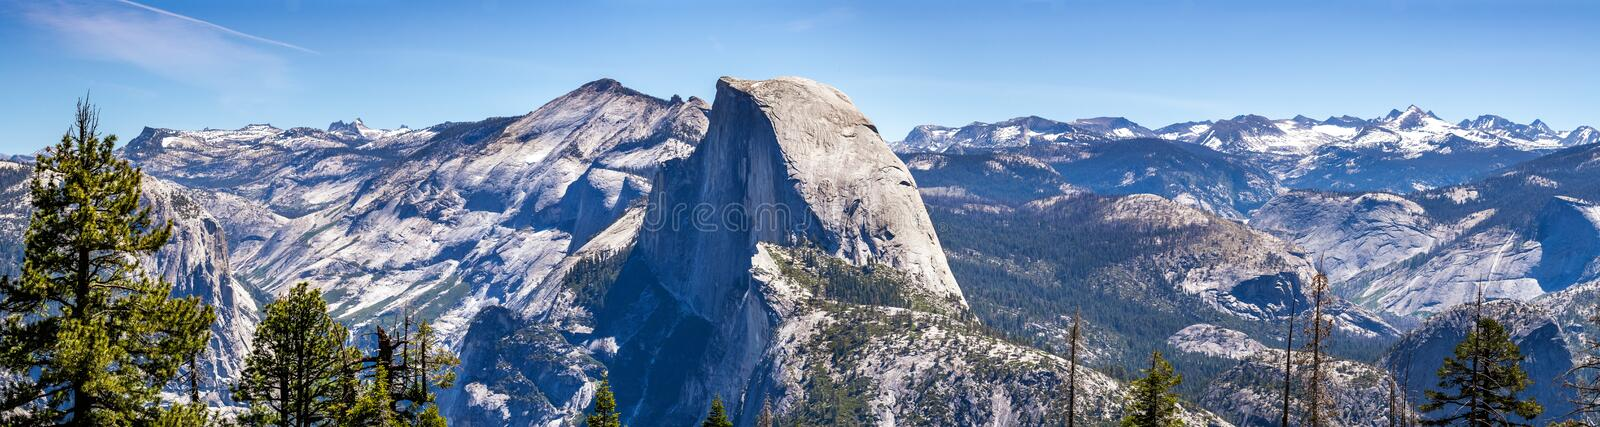 Panoramic view of the majestic Half Dome and the surrounding wilderness area with mountain peaks and ridges still covered by snow. Yosemite National Park stock image